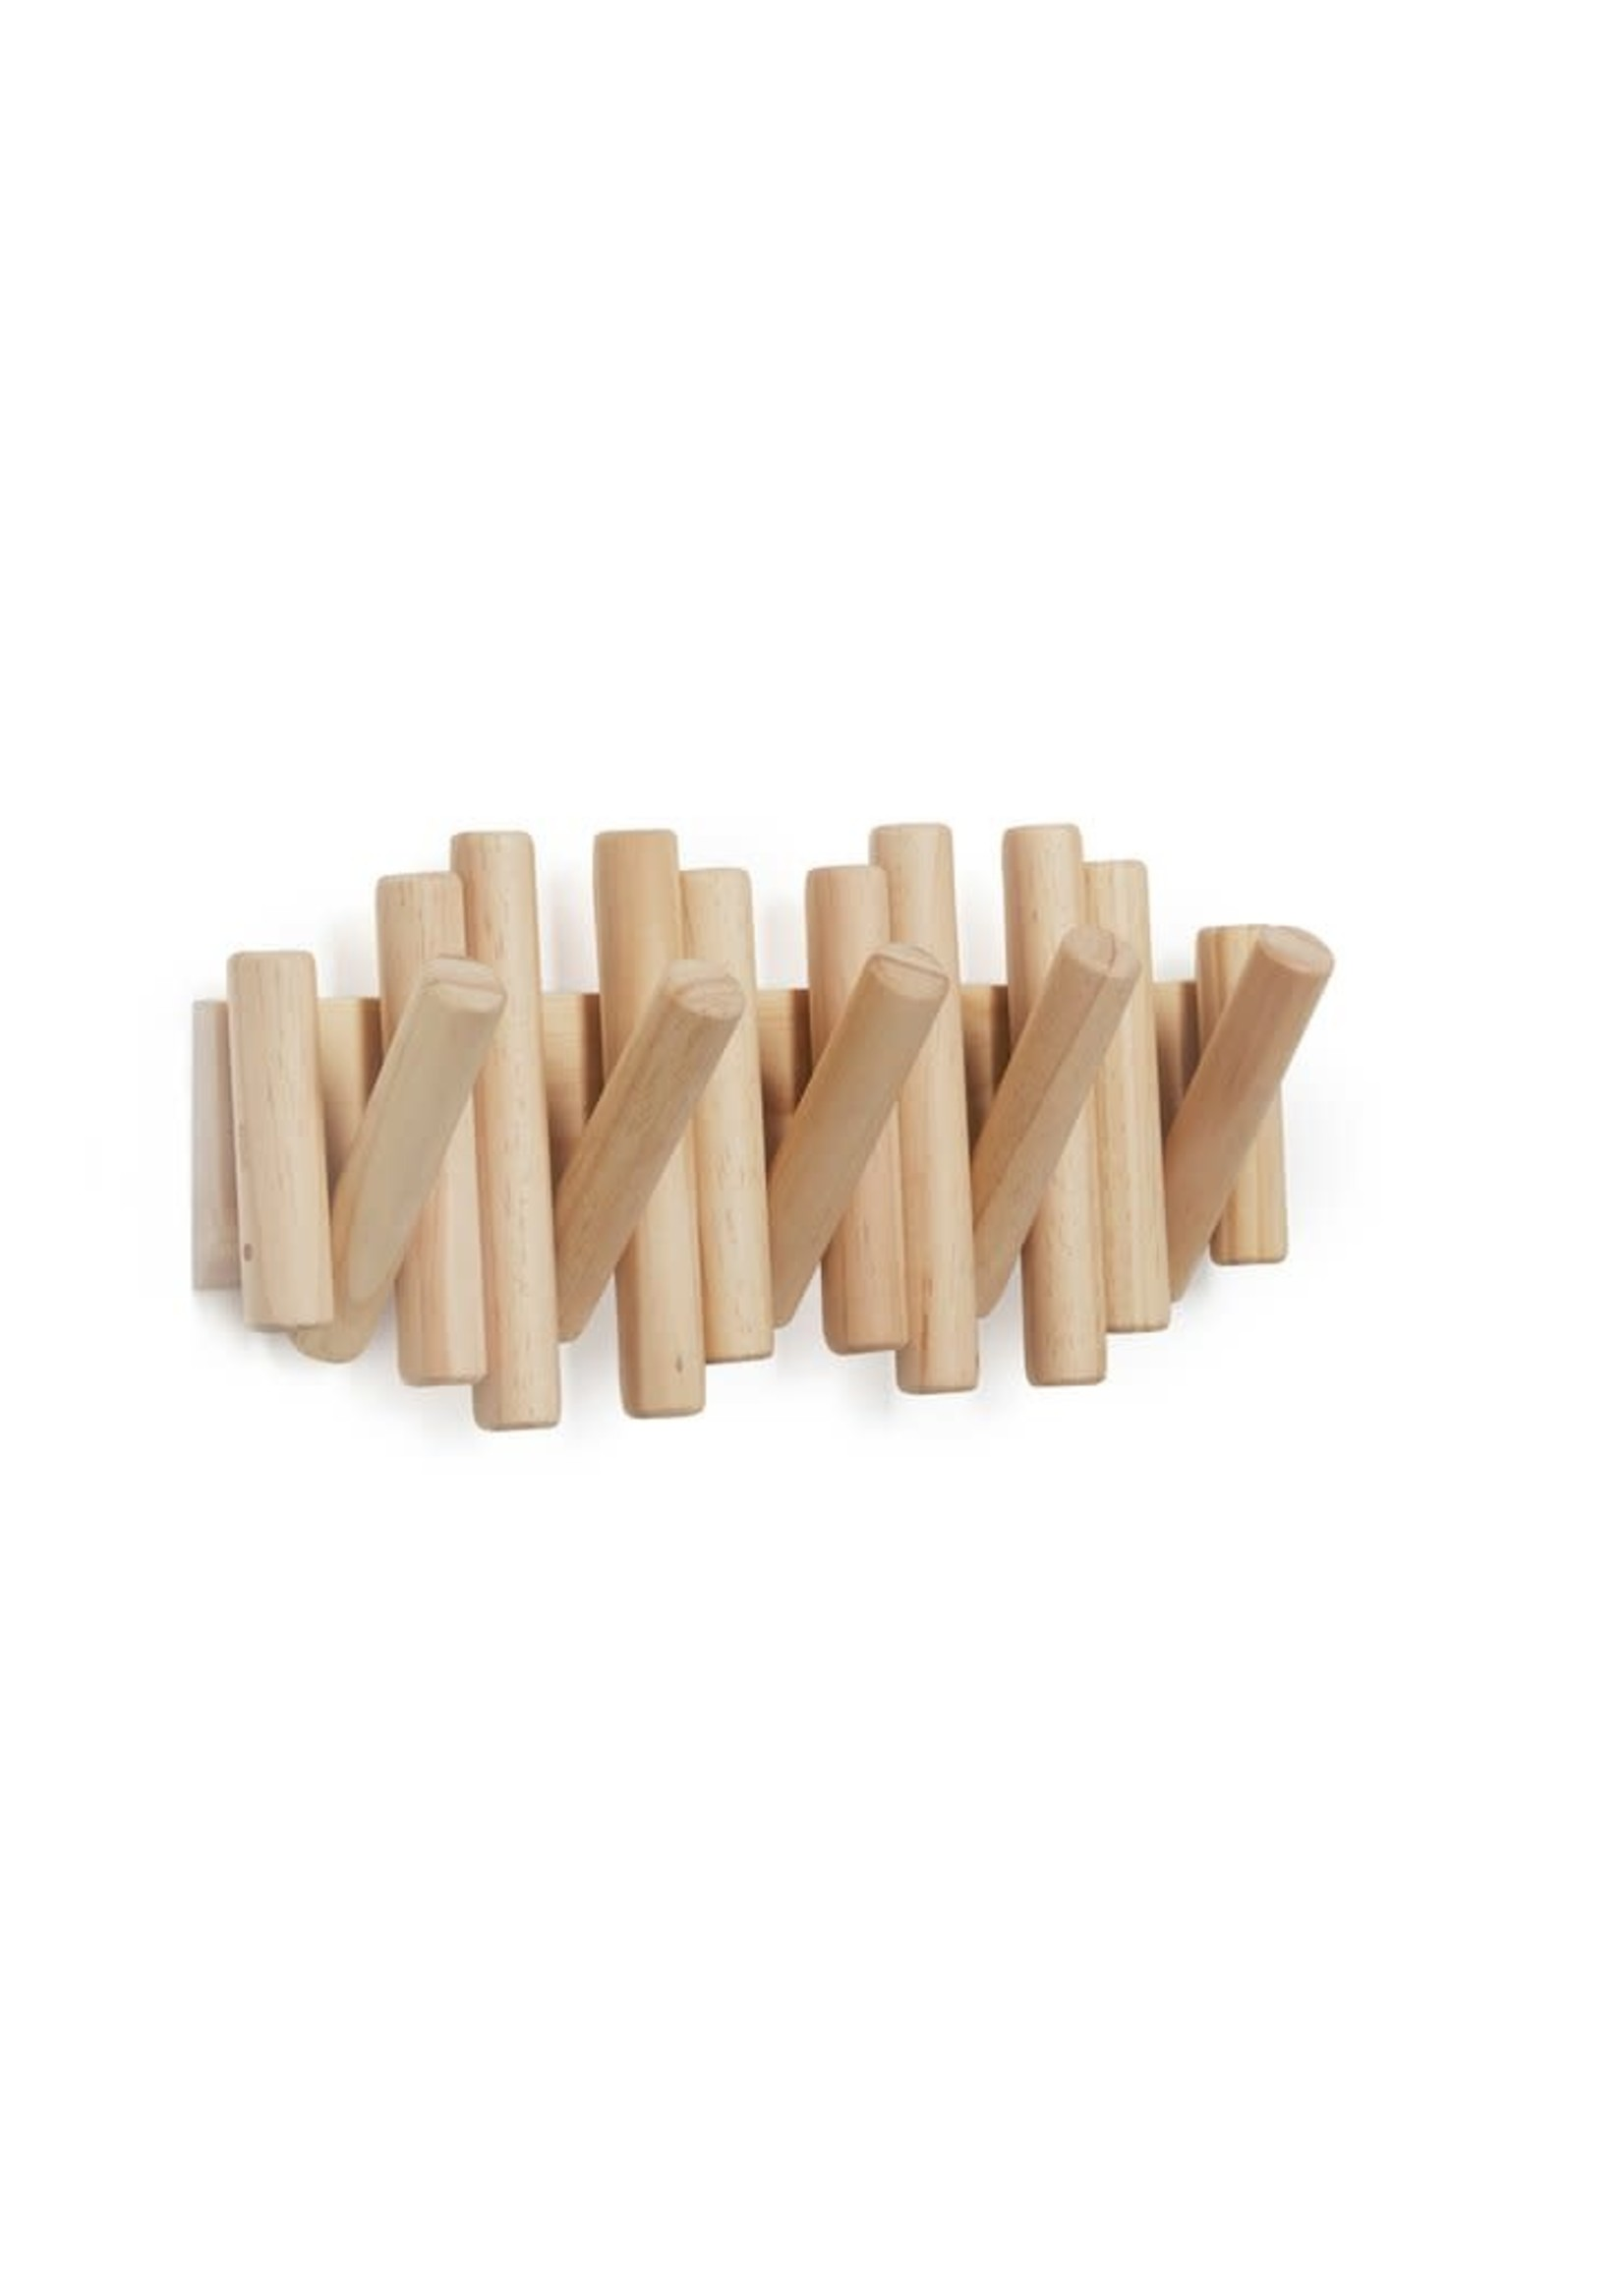 UMBRA UMBRA PICKET WOODEN HOOKS